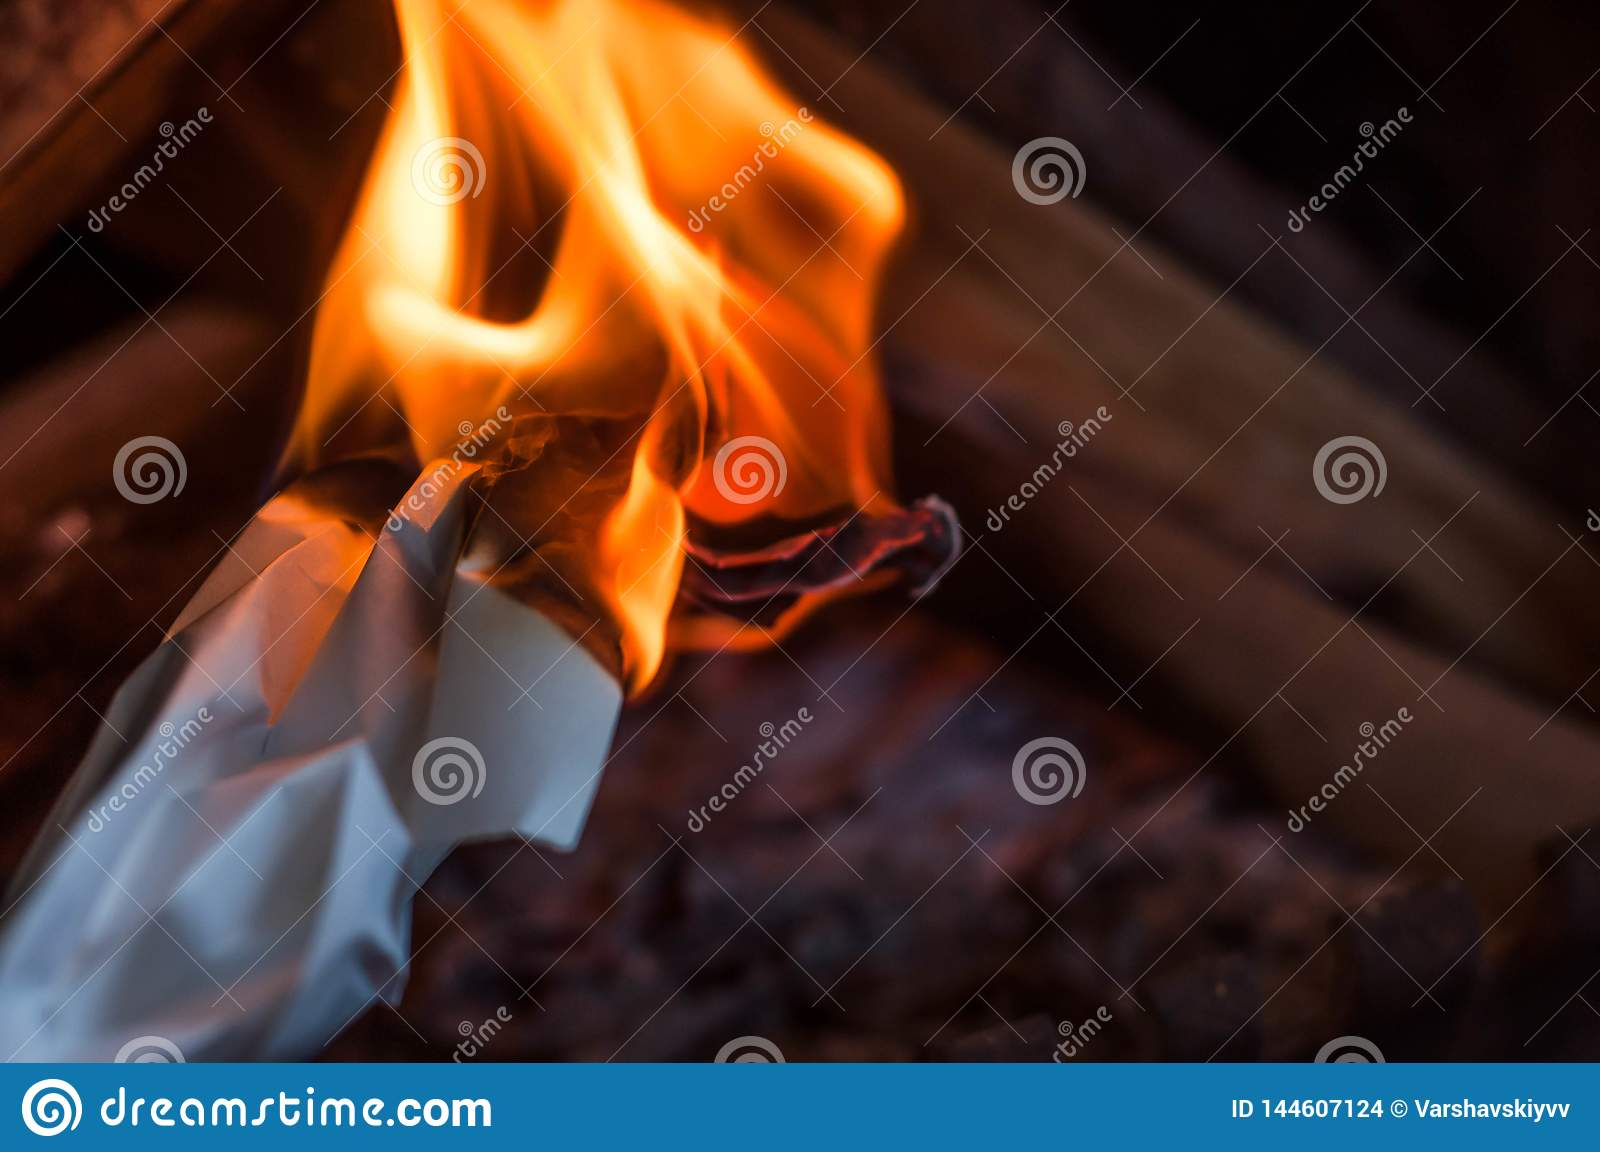 A sheet of paper burning with a red orange bright flame with heat